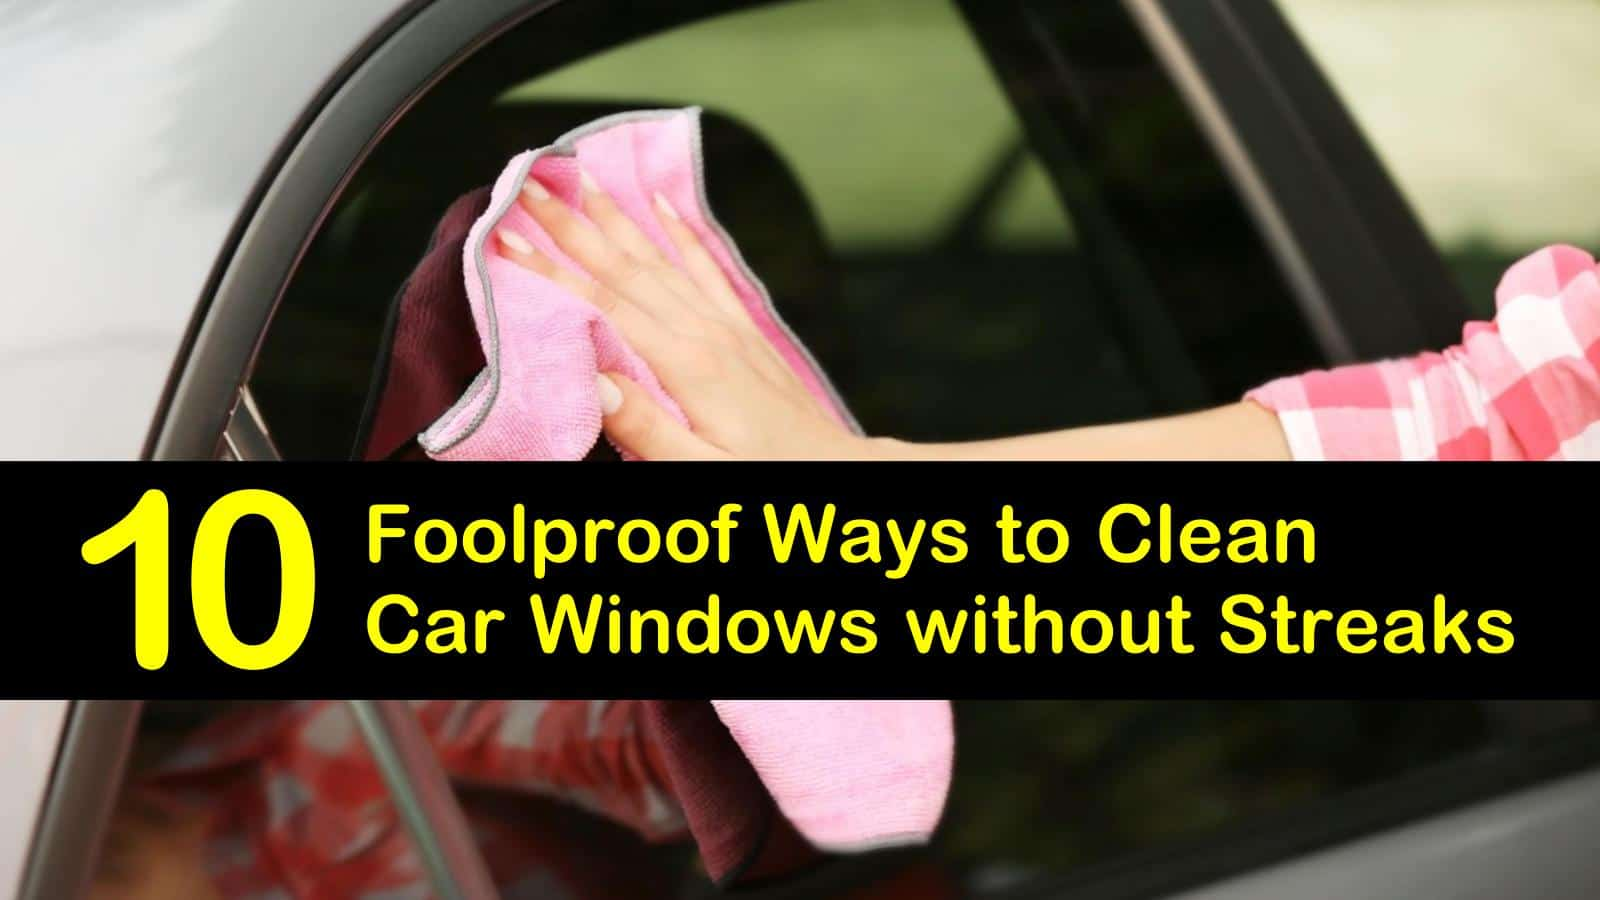 Clean Car Windows Without Streaks